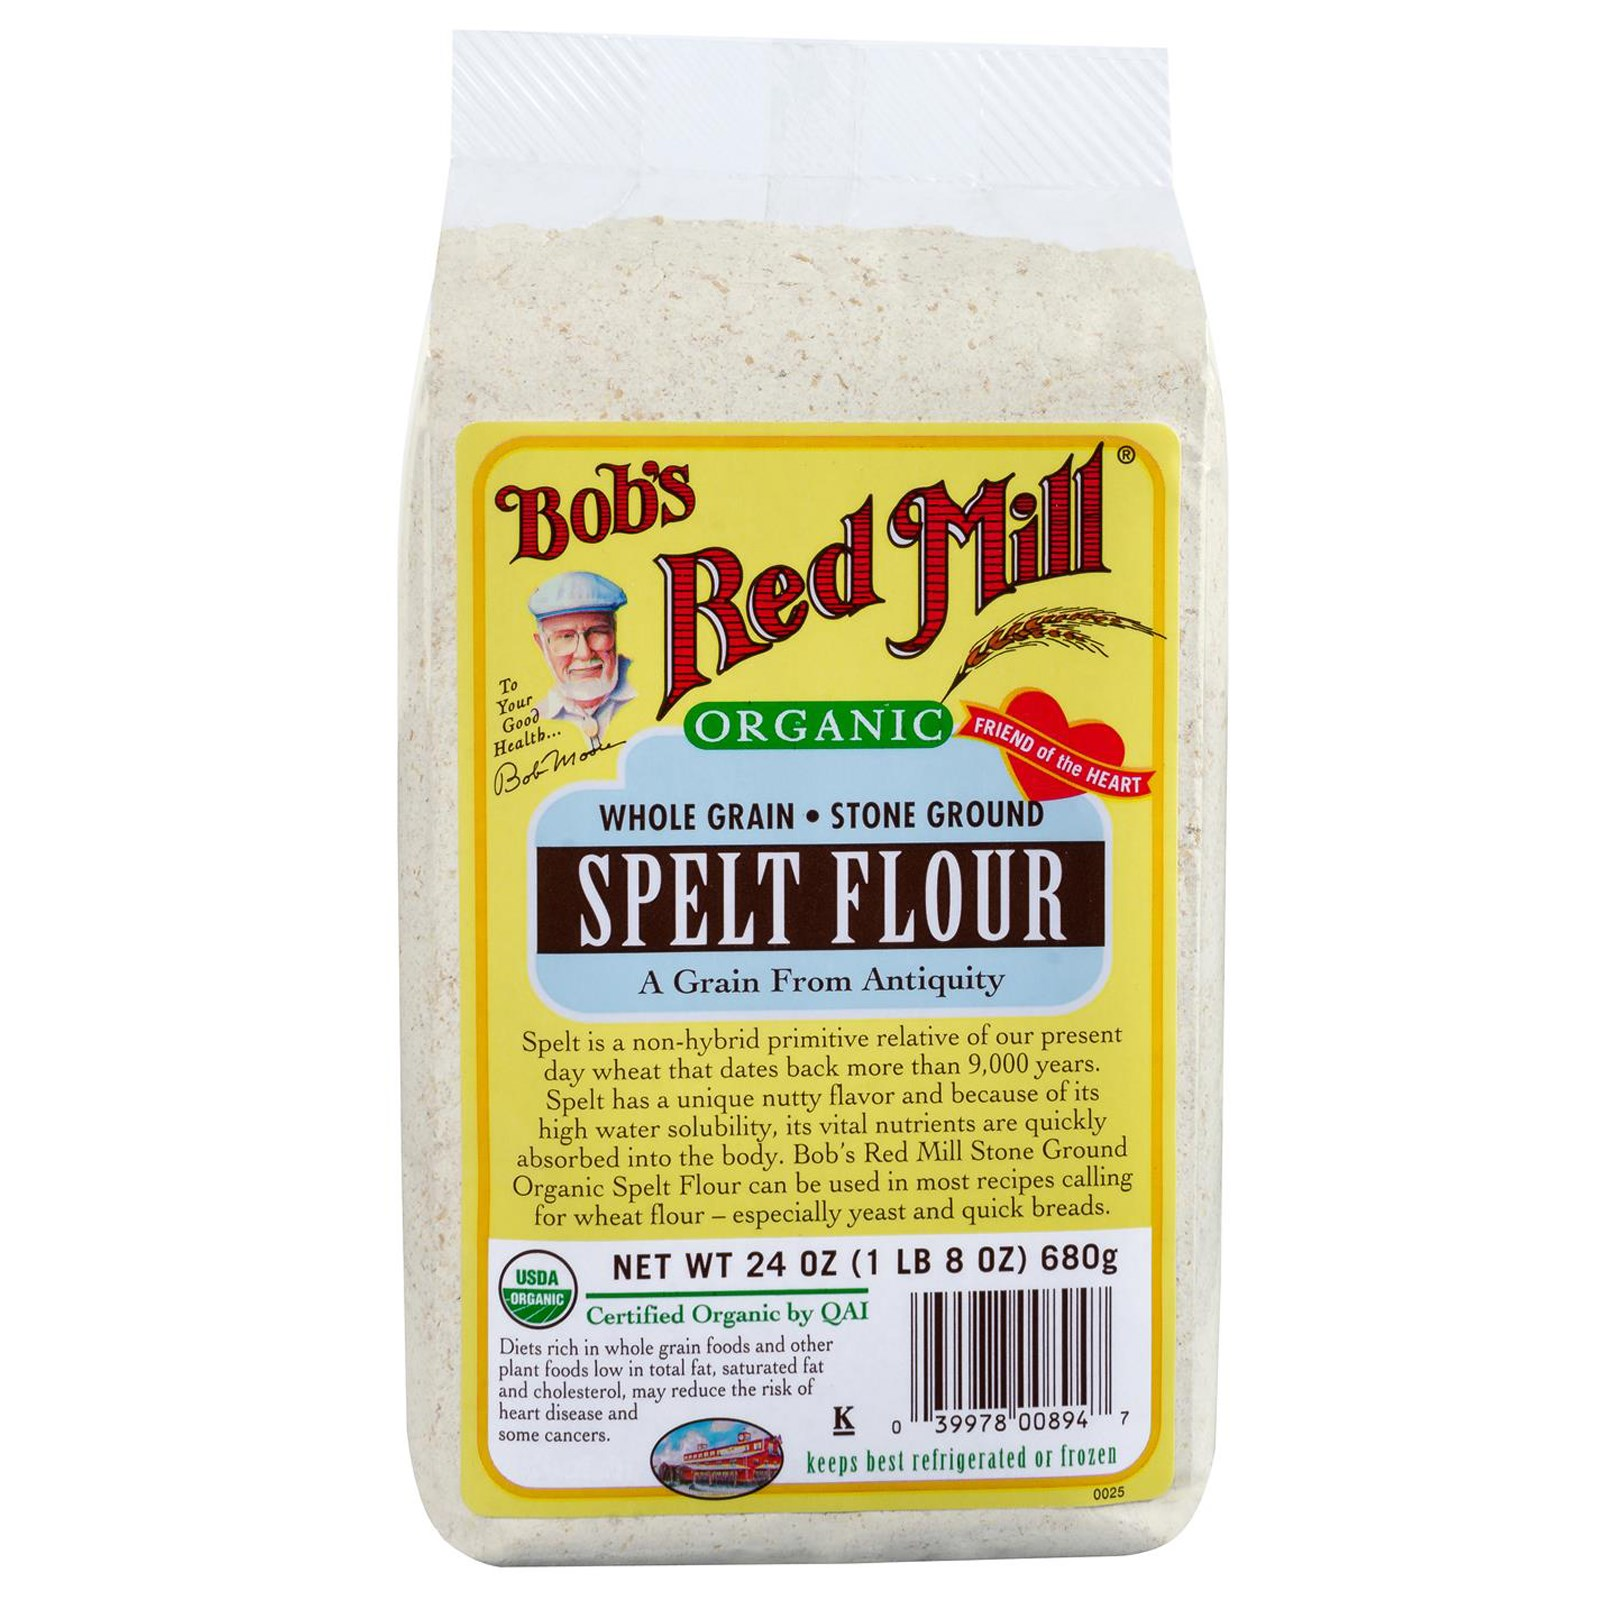 Bob's Red Mill Organic Whole Grain Spelt Flour